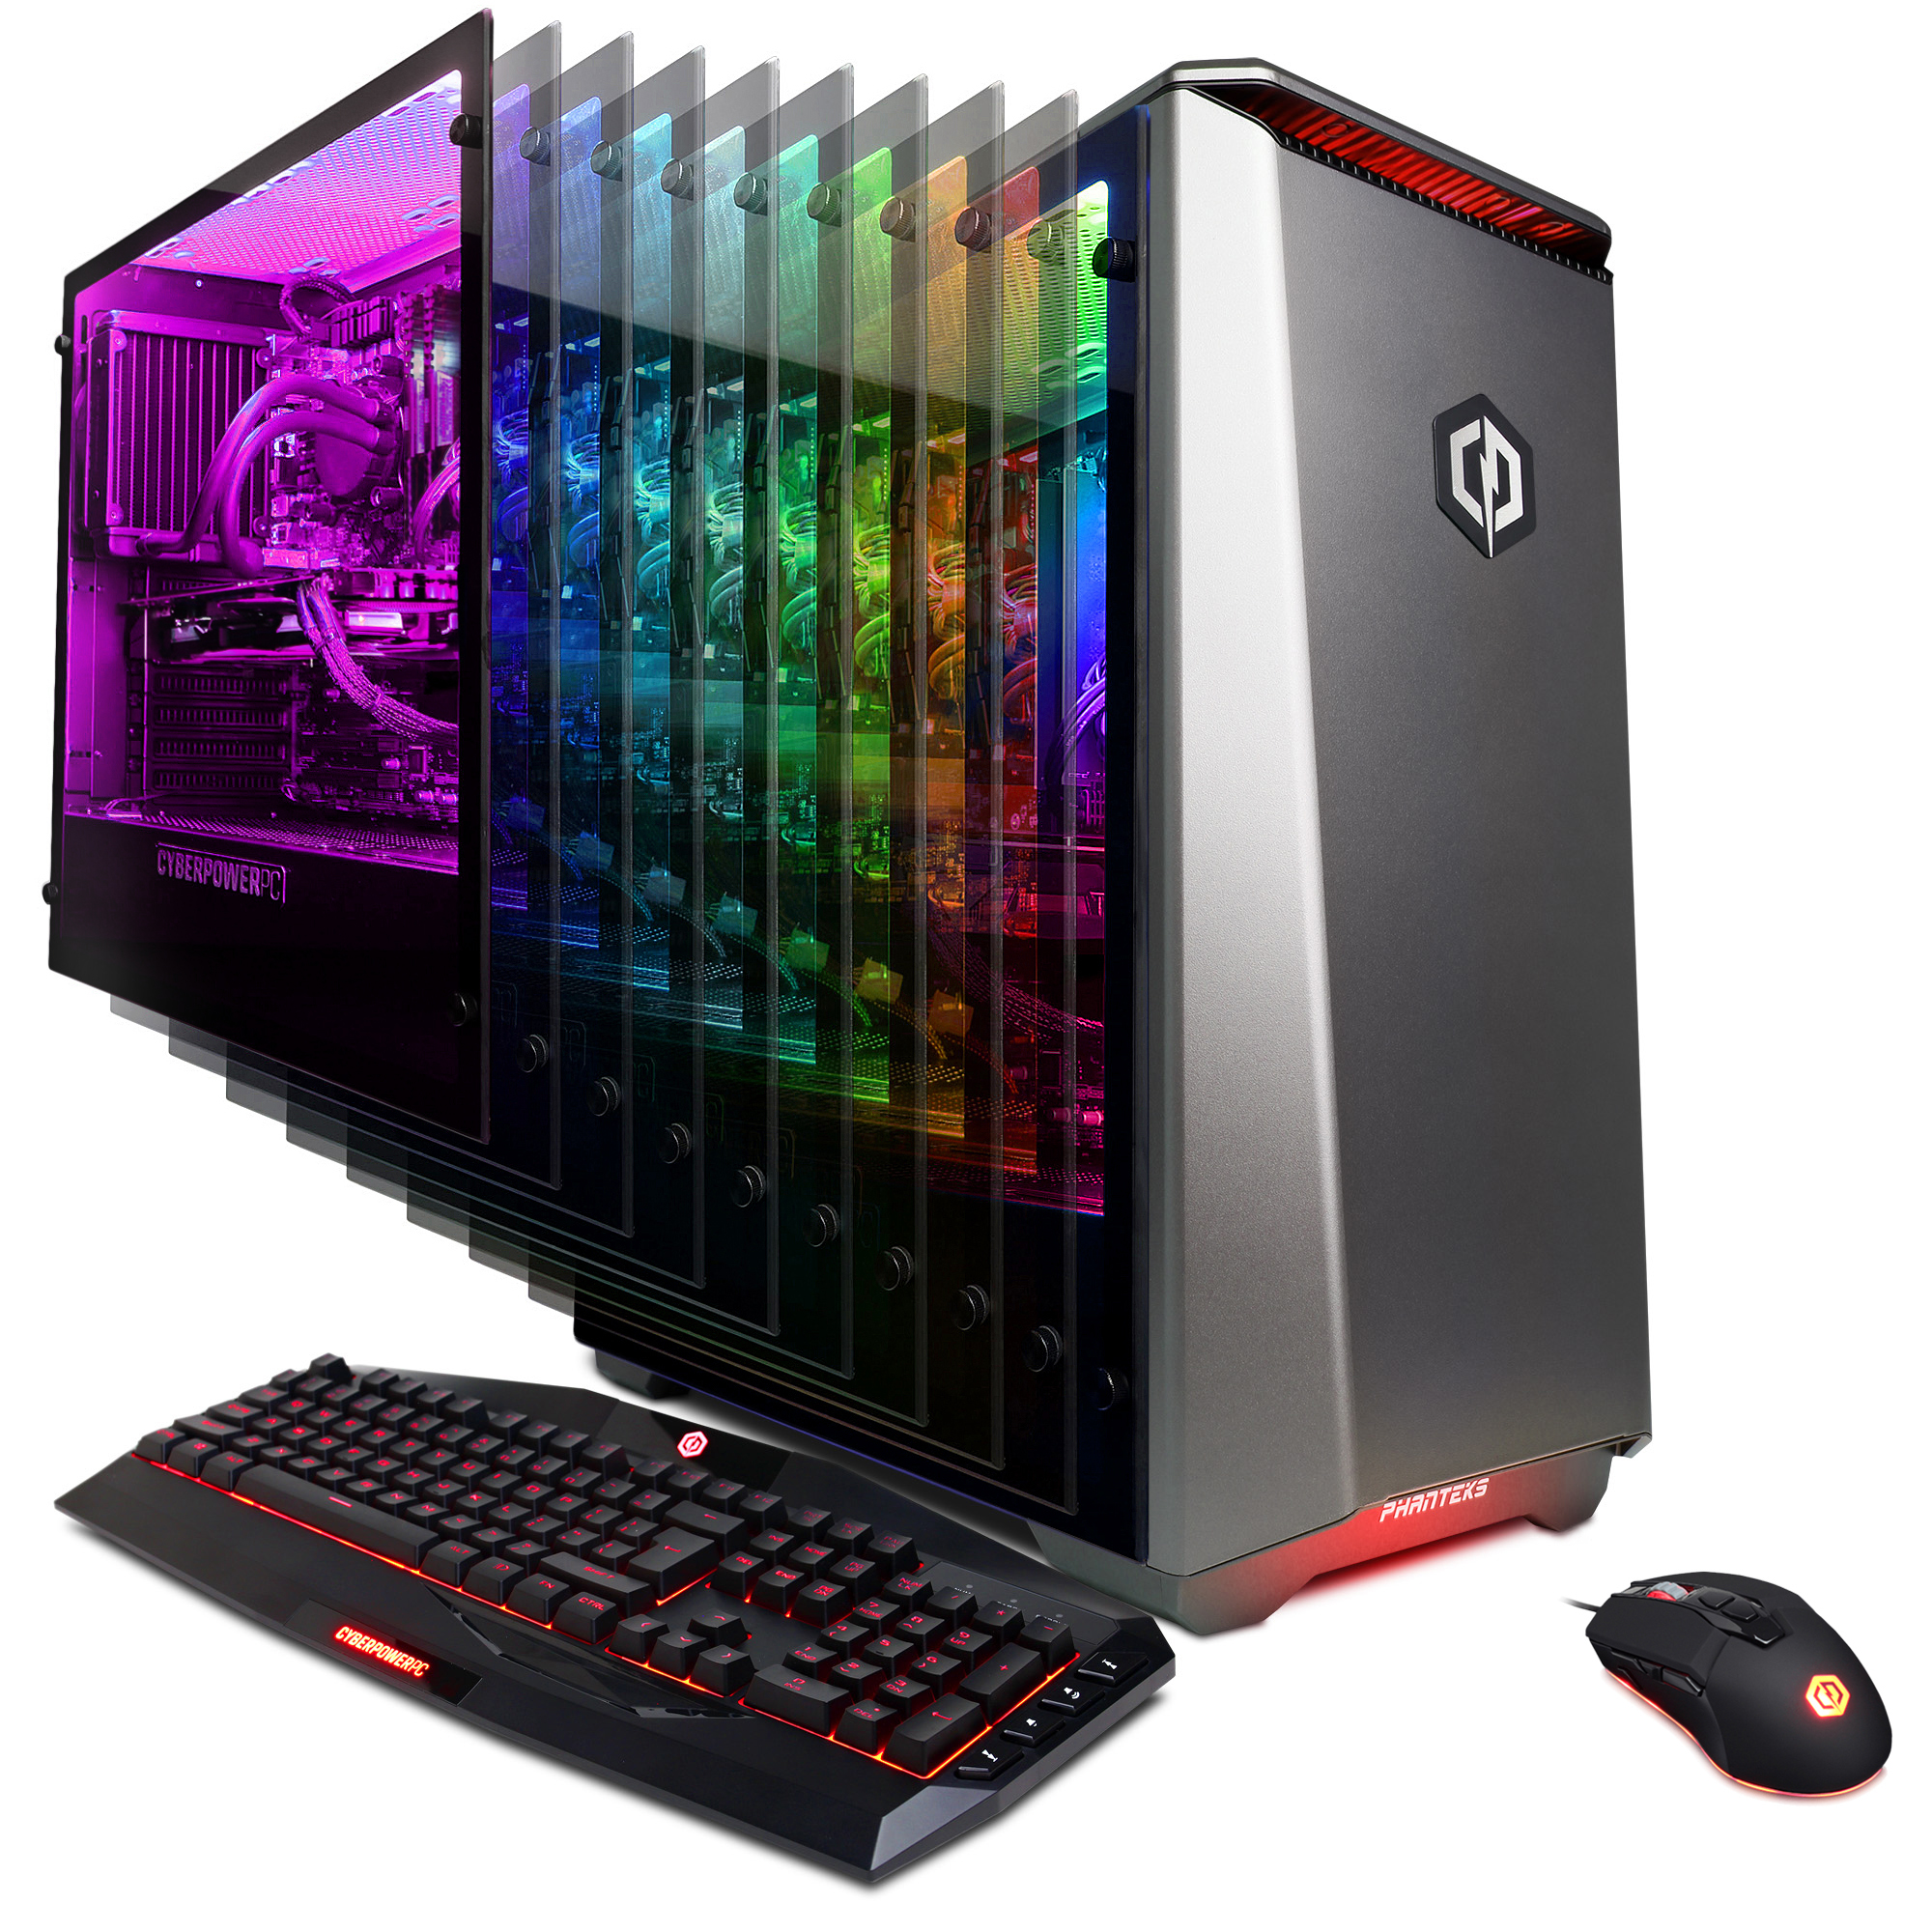 CYBERPOWERPC Gamer Panzer Limited PL3600W Gaming Desktop PC with Liquid Cooled Intel i7+ 8086K Processor, 16GB DDR4, NVIDIA GeForce GTX 1070 8GB, 1TB HDD + 16GB Optane, WiFi and Win 10 Home 64-Bit